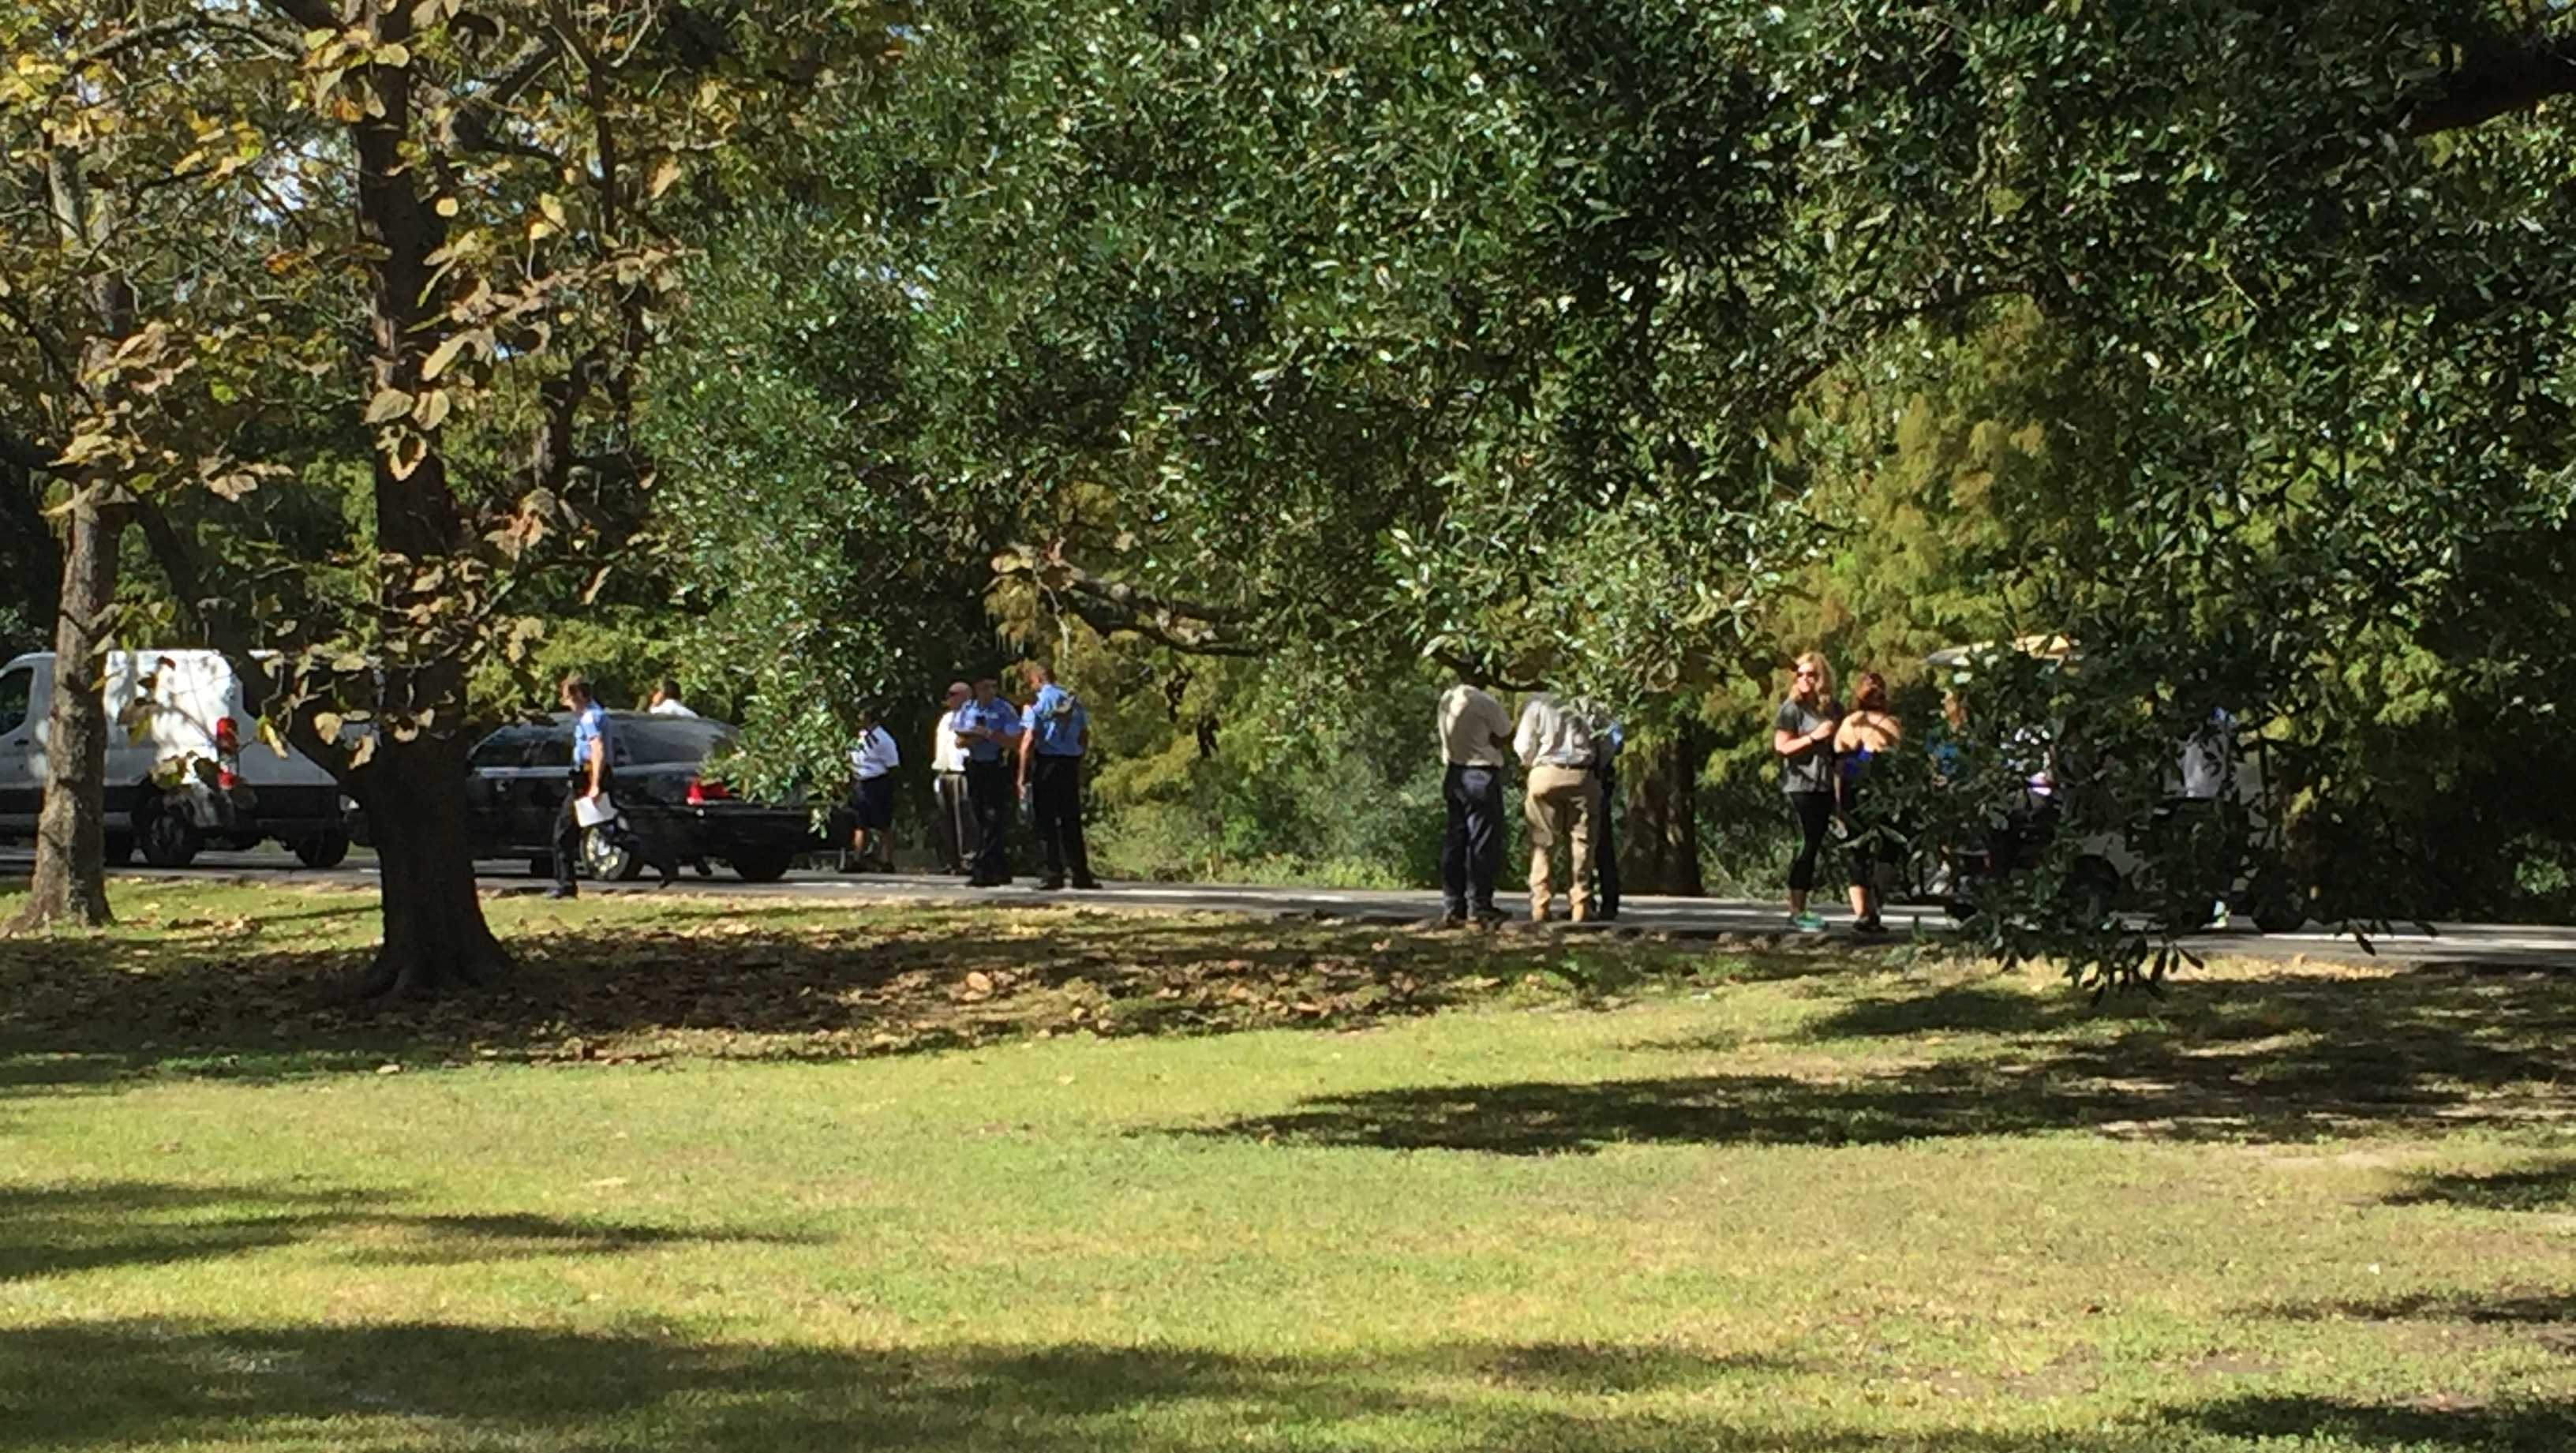 NOPD investigates body found in Audubon Park